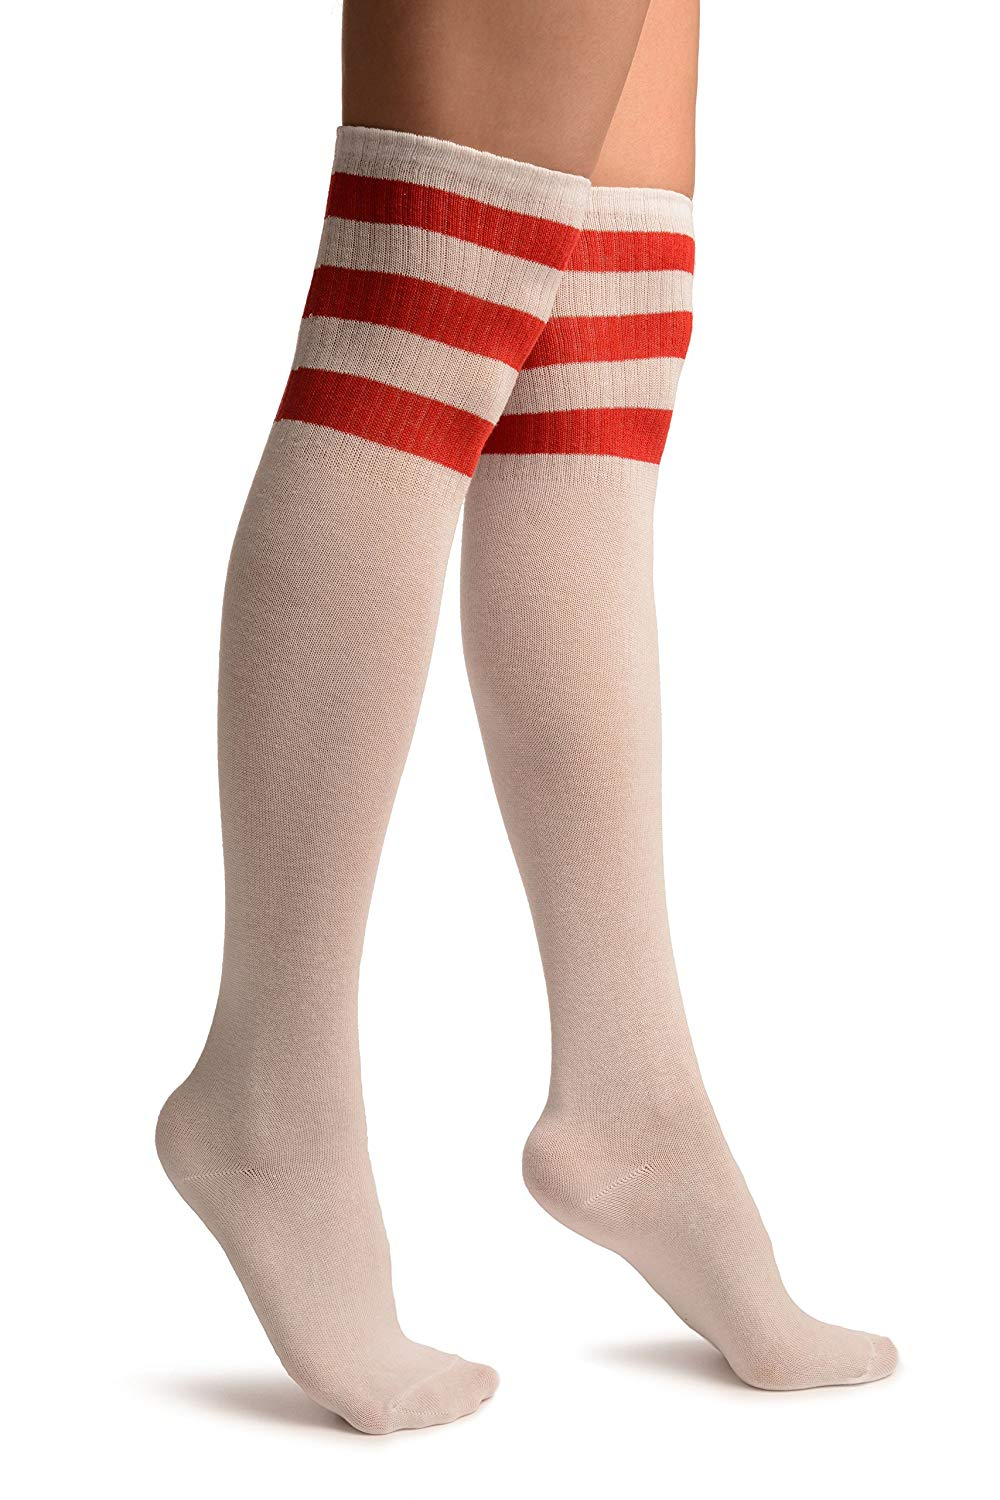 5d8600d9249 Get Quotations · White With Red Stripes Referee Knee High Socks - Socks